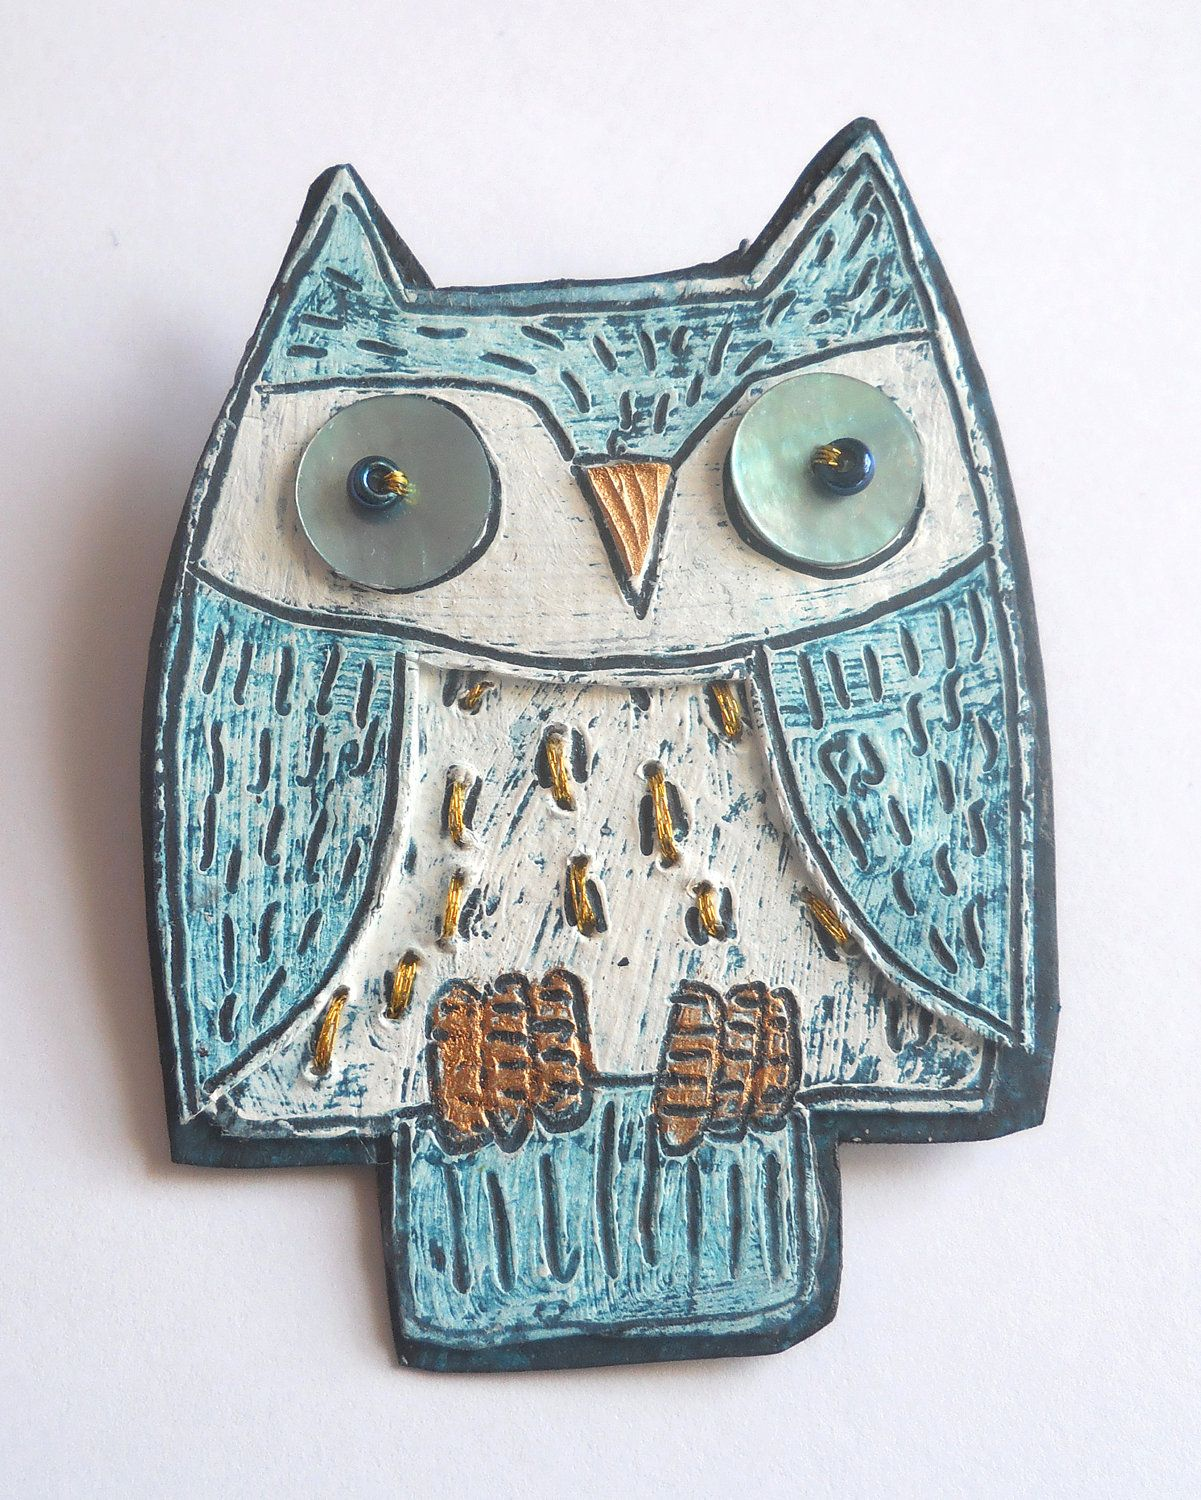 One of my illustrated owl brooches.